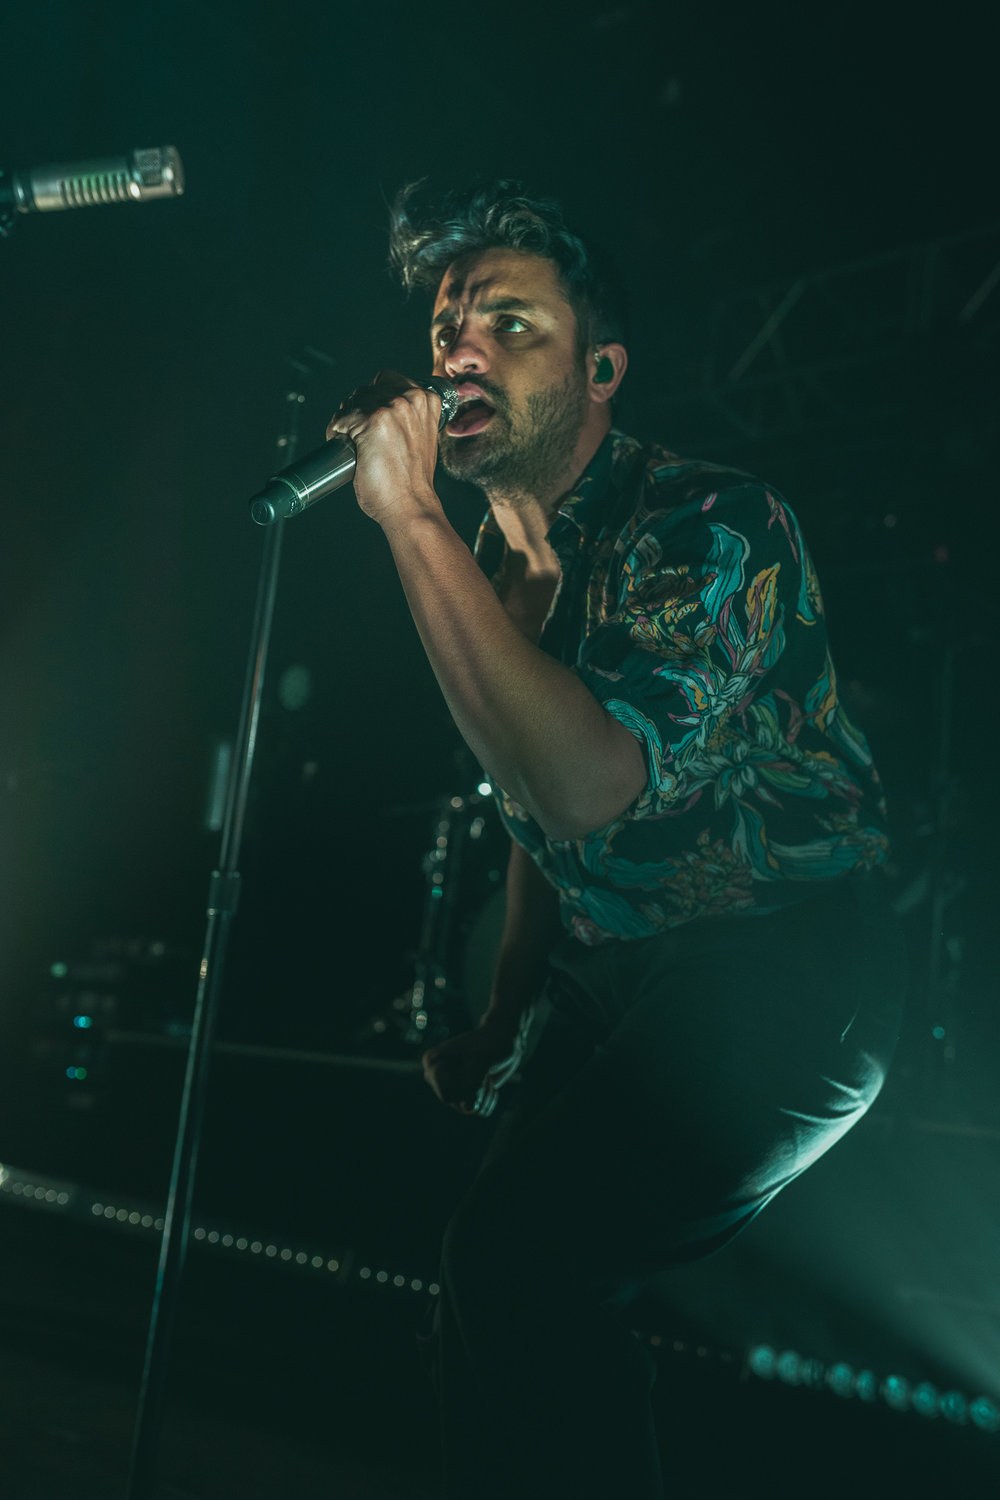 Copy of 11-15-18 - Young The Giant JP-13.jpg